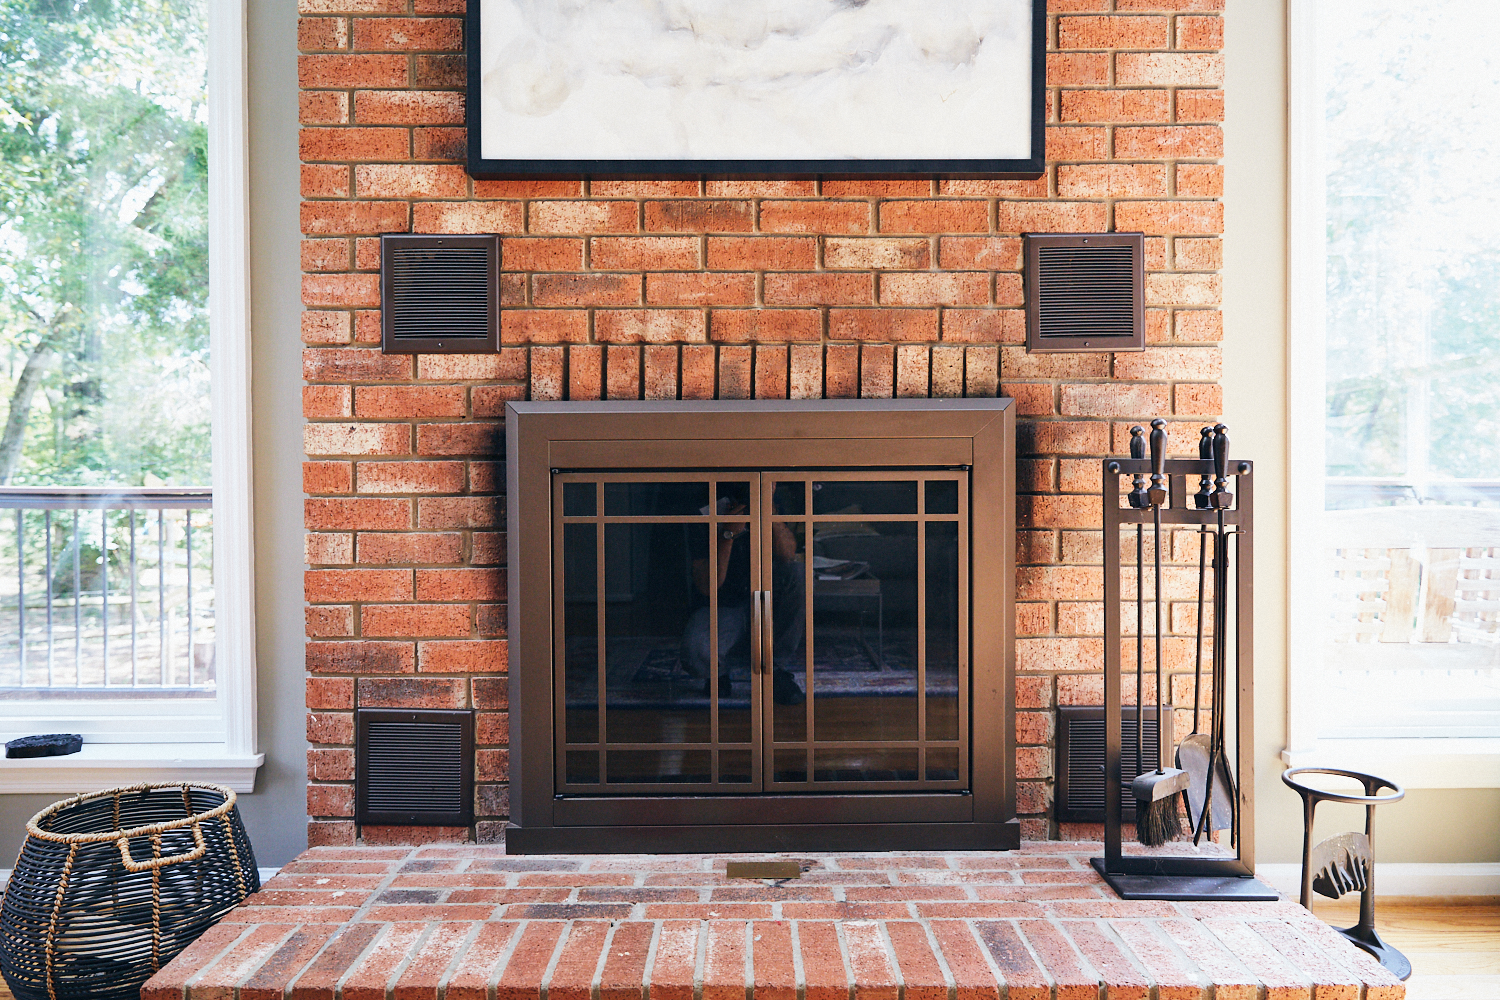 Fireplace works and wood is available if we want to use it.